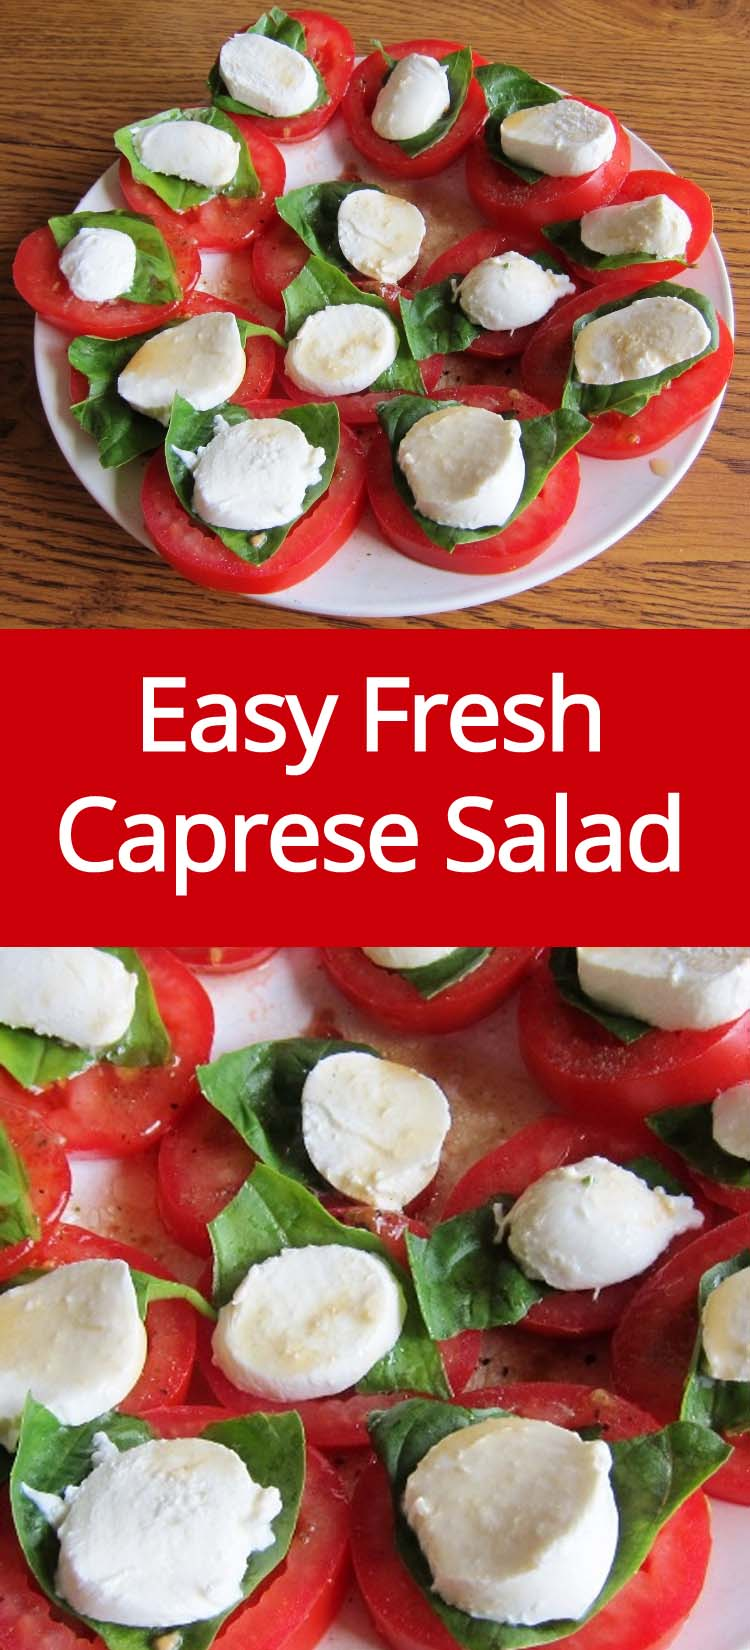 Caprese Salad Recipe With Fresh Tomatoes, Basil and Mozzarella Cheese | MelanieCooks.com